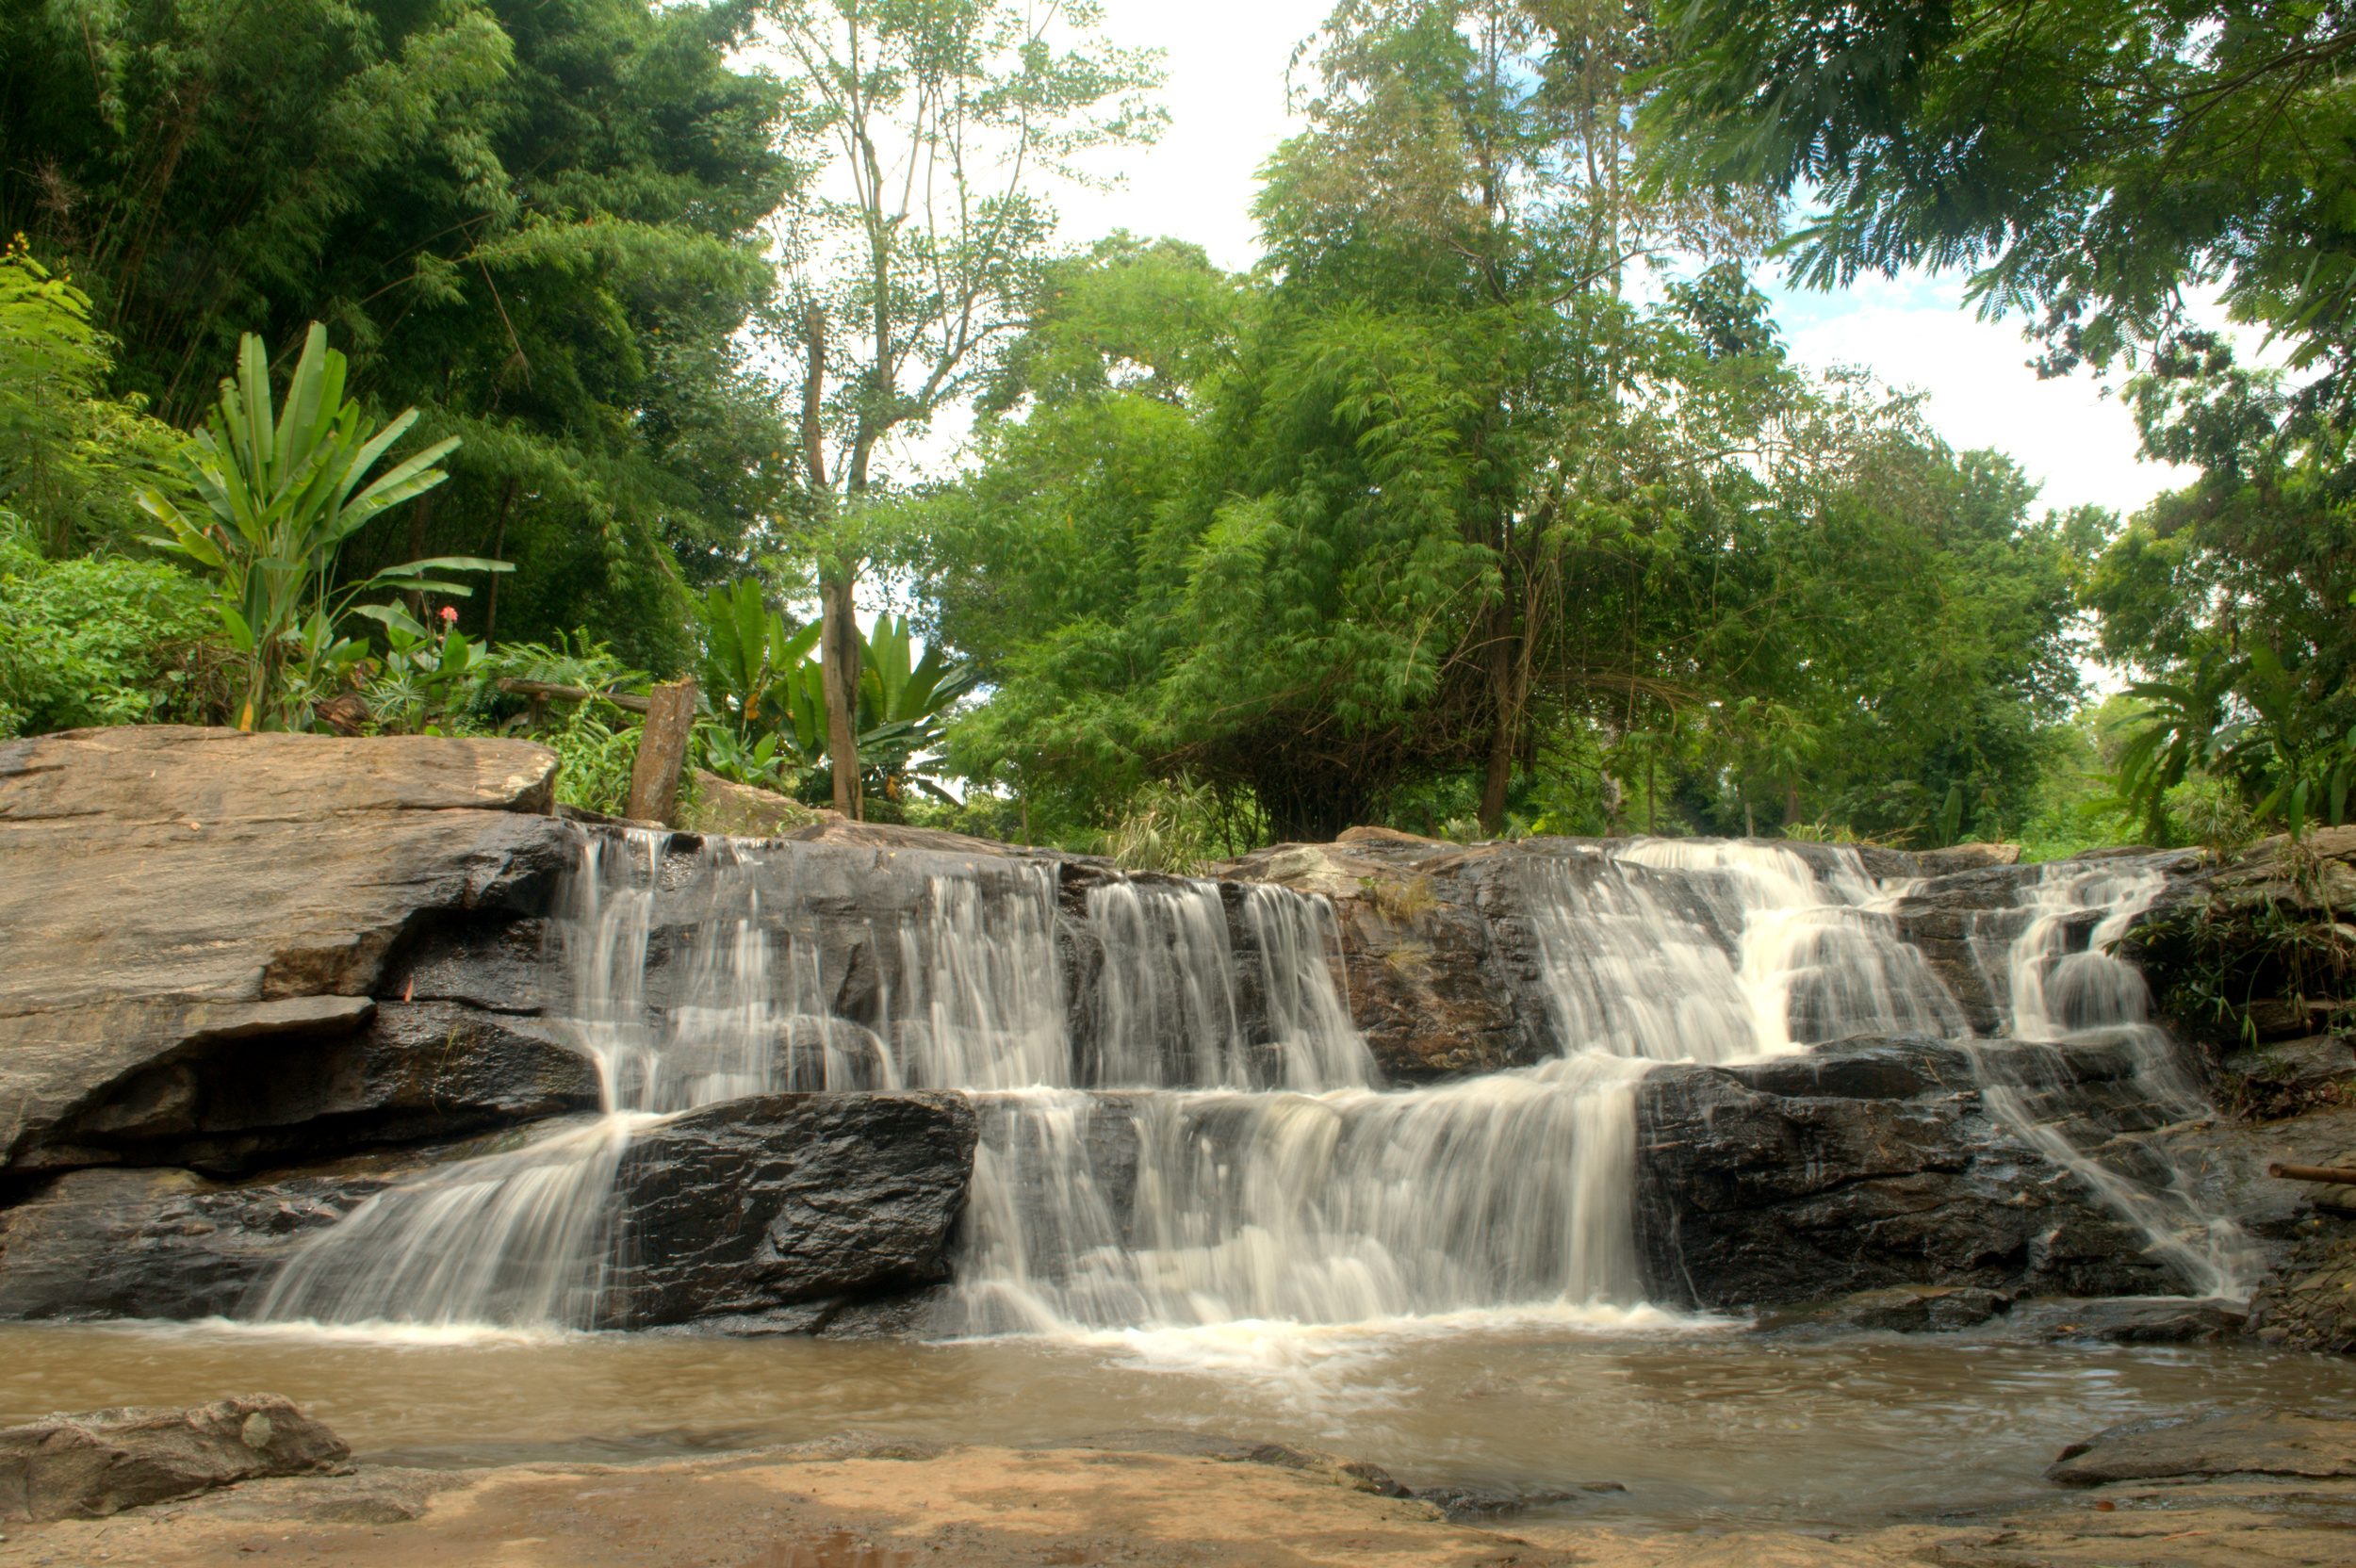 Take time to listen and enjoy the view like this gorgeous waterfall on the edge of a national park in Northern Thailand!